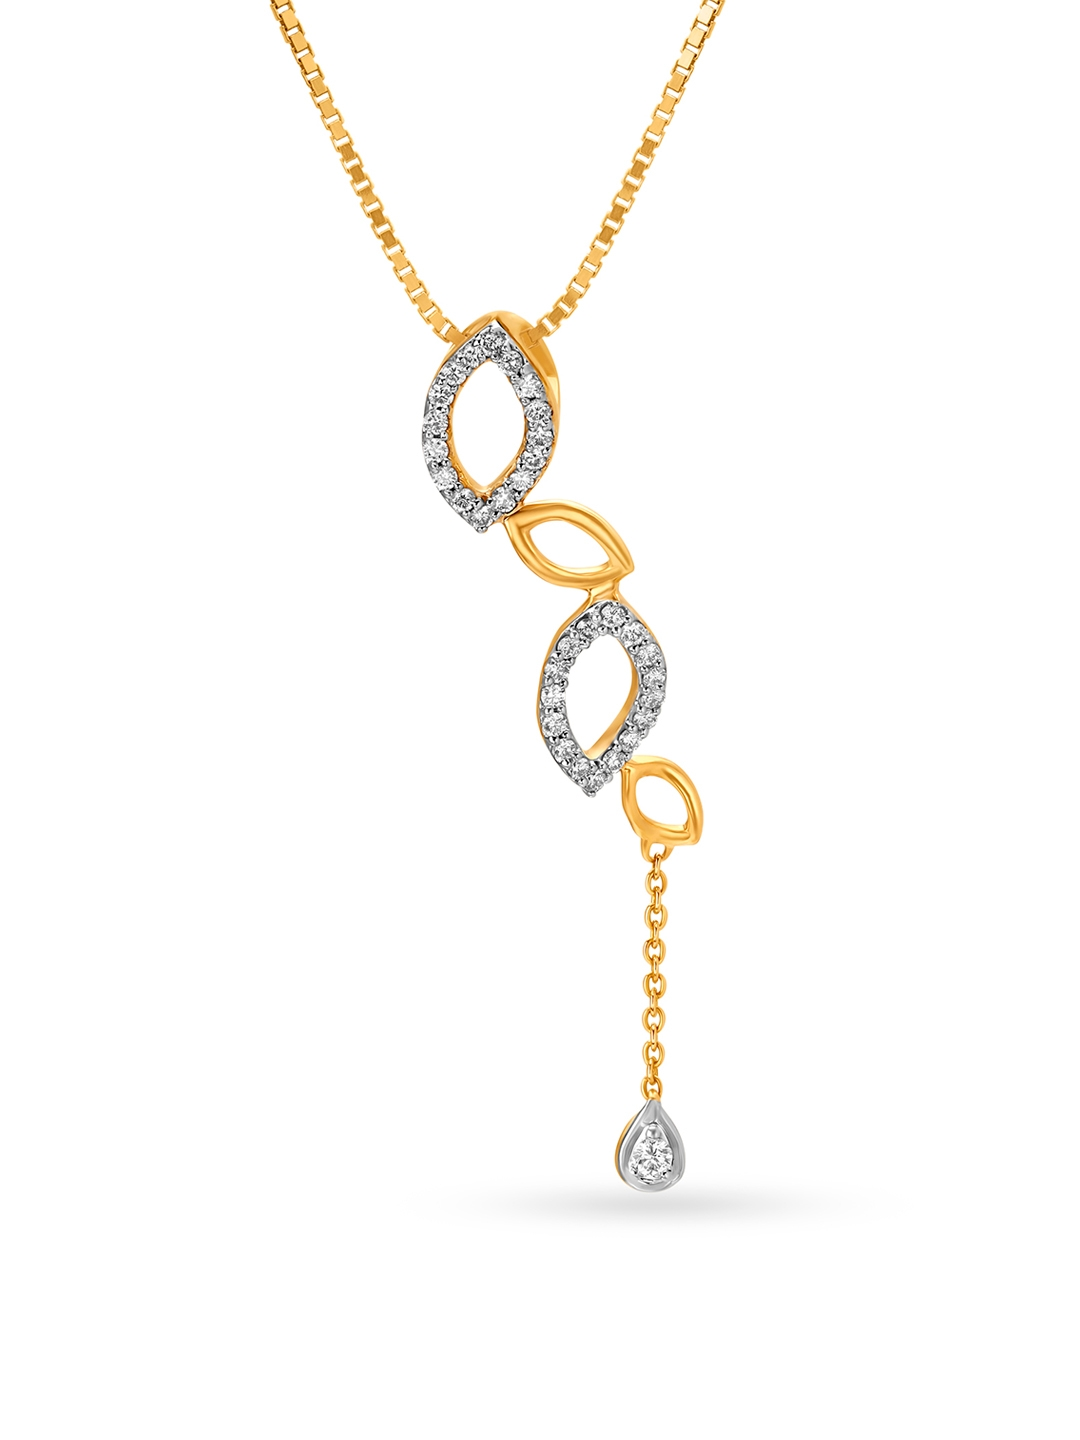 Mia by Tanishq 14KT Yellow Gold Diamond Pendant